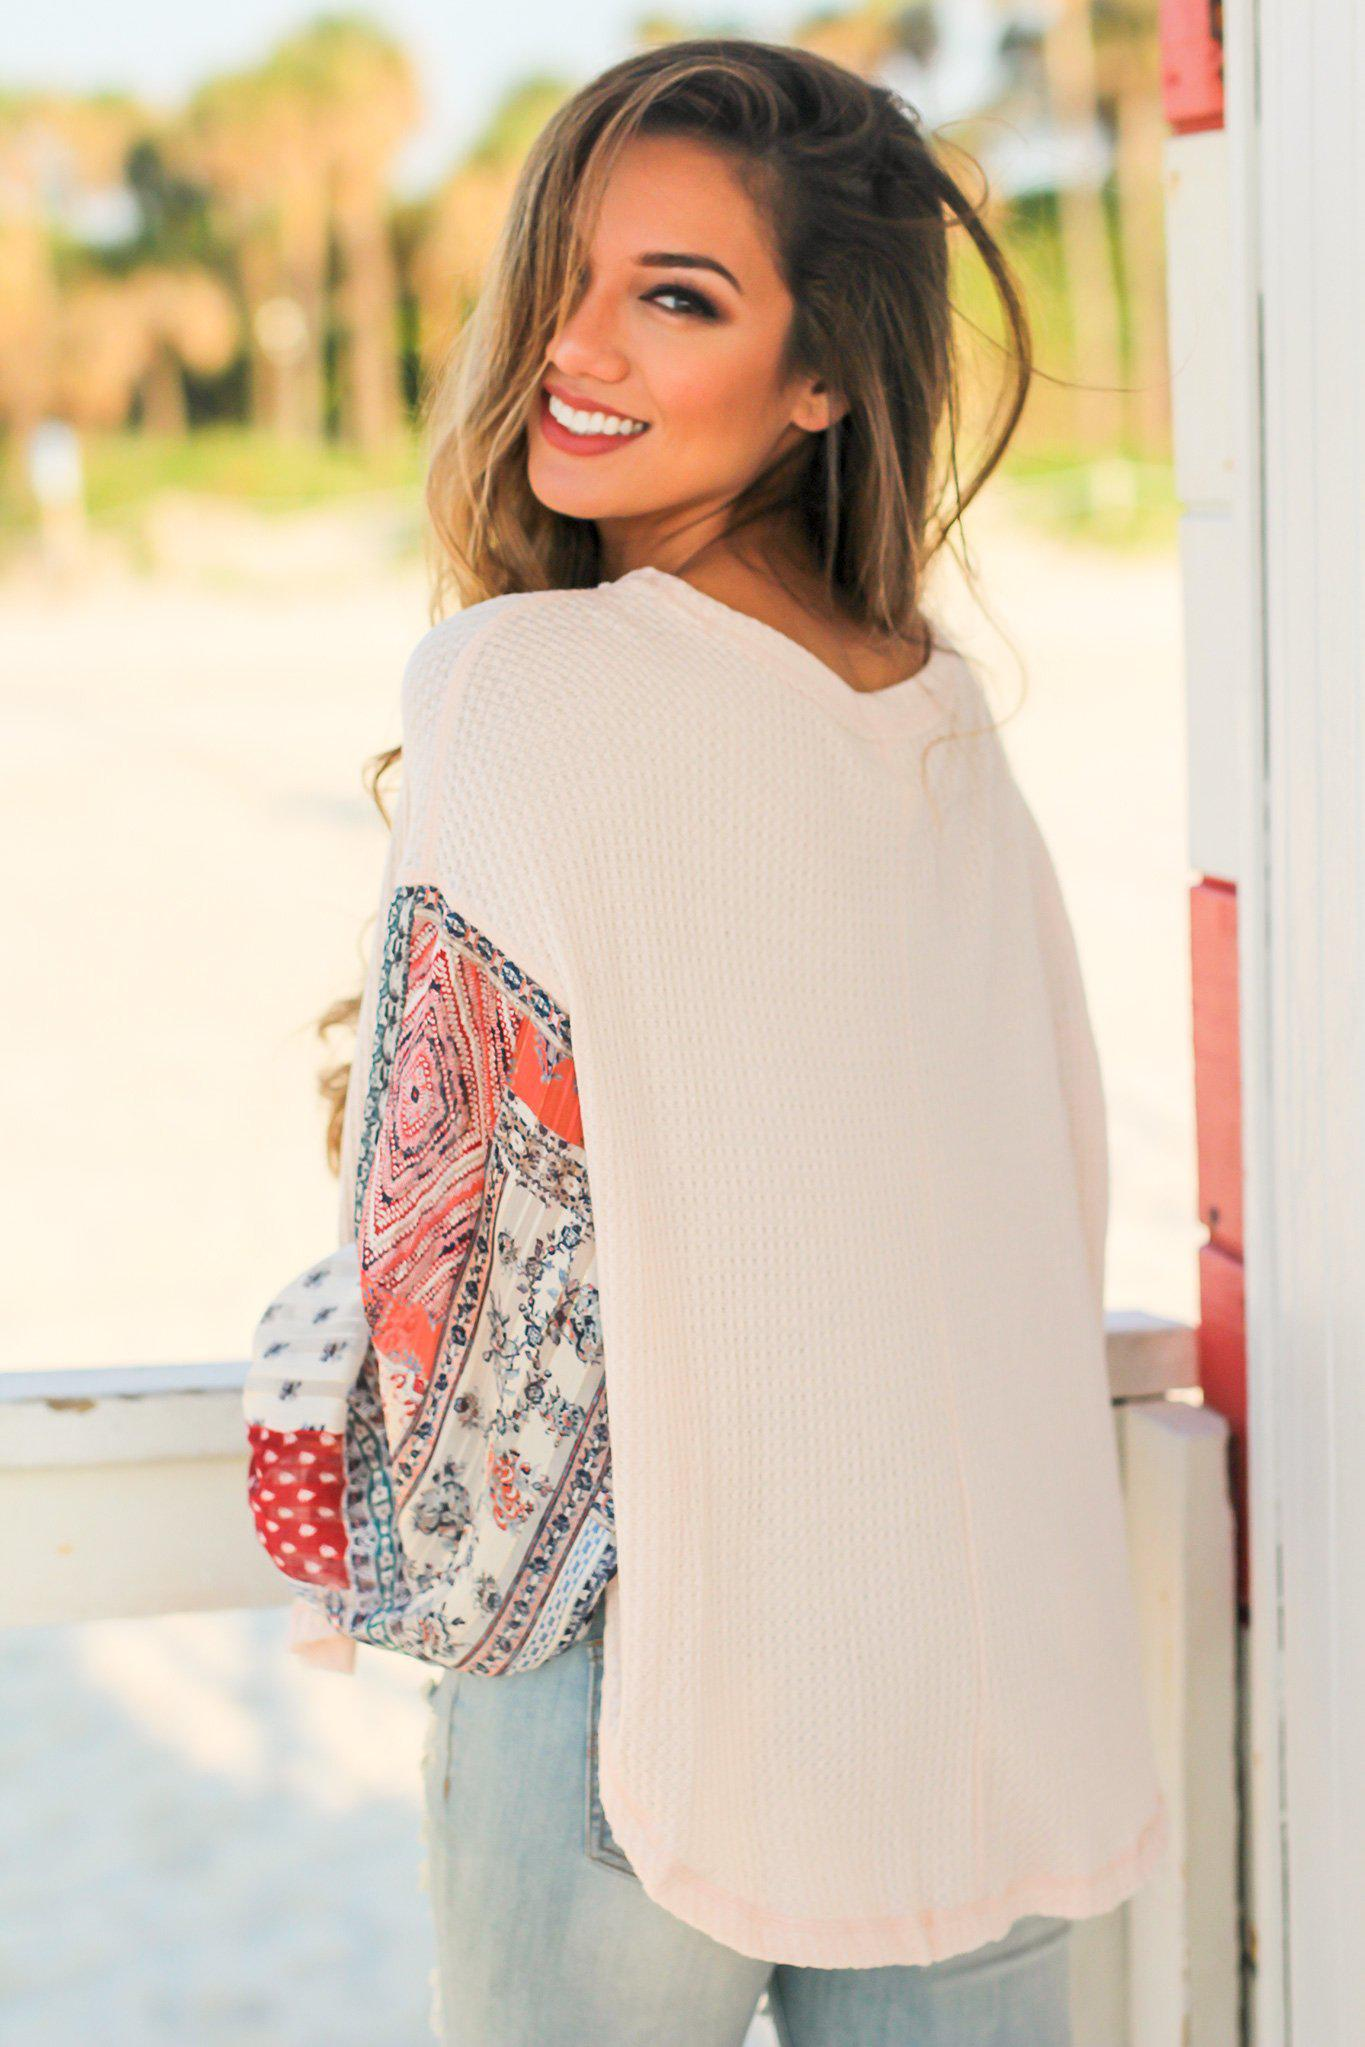 Light Peach Knit Top with Printed Sleeves